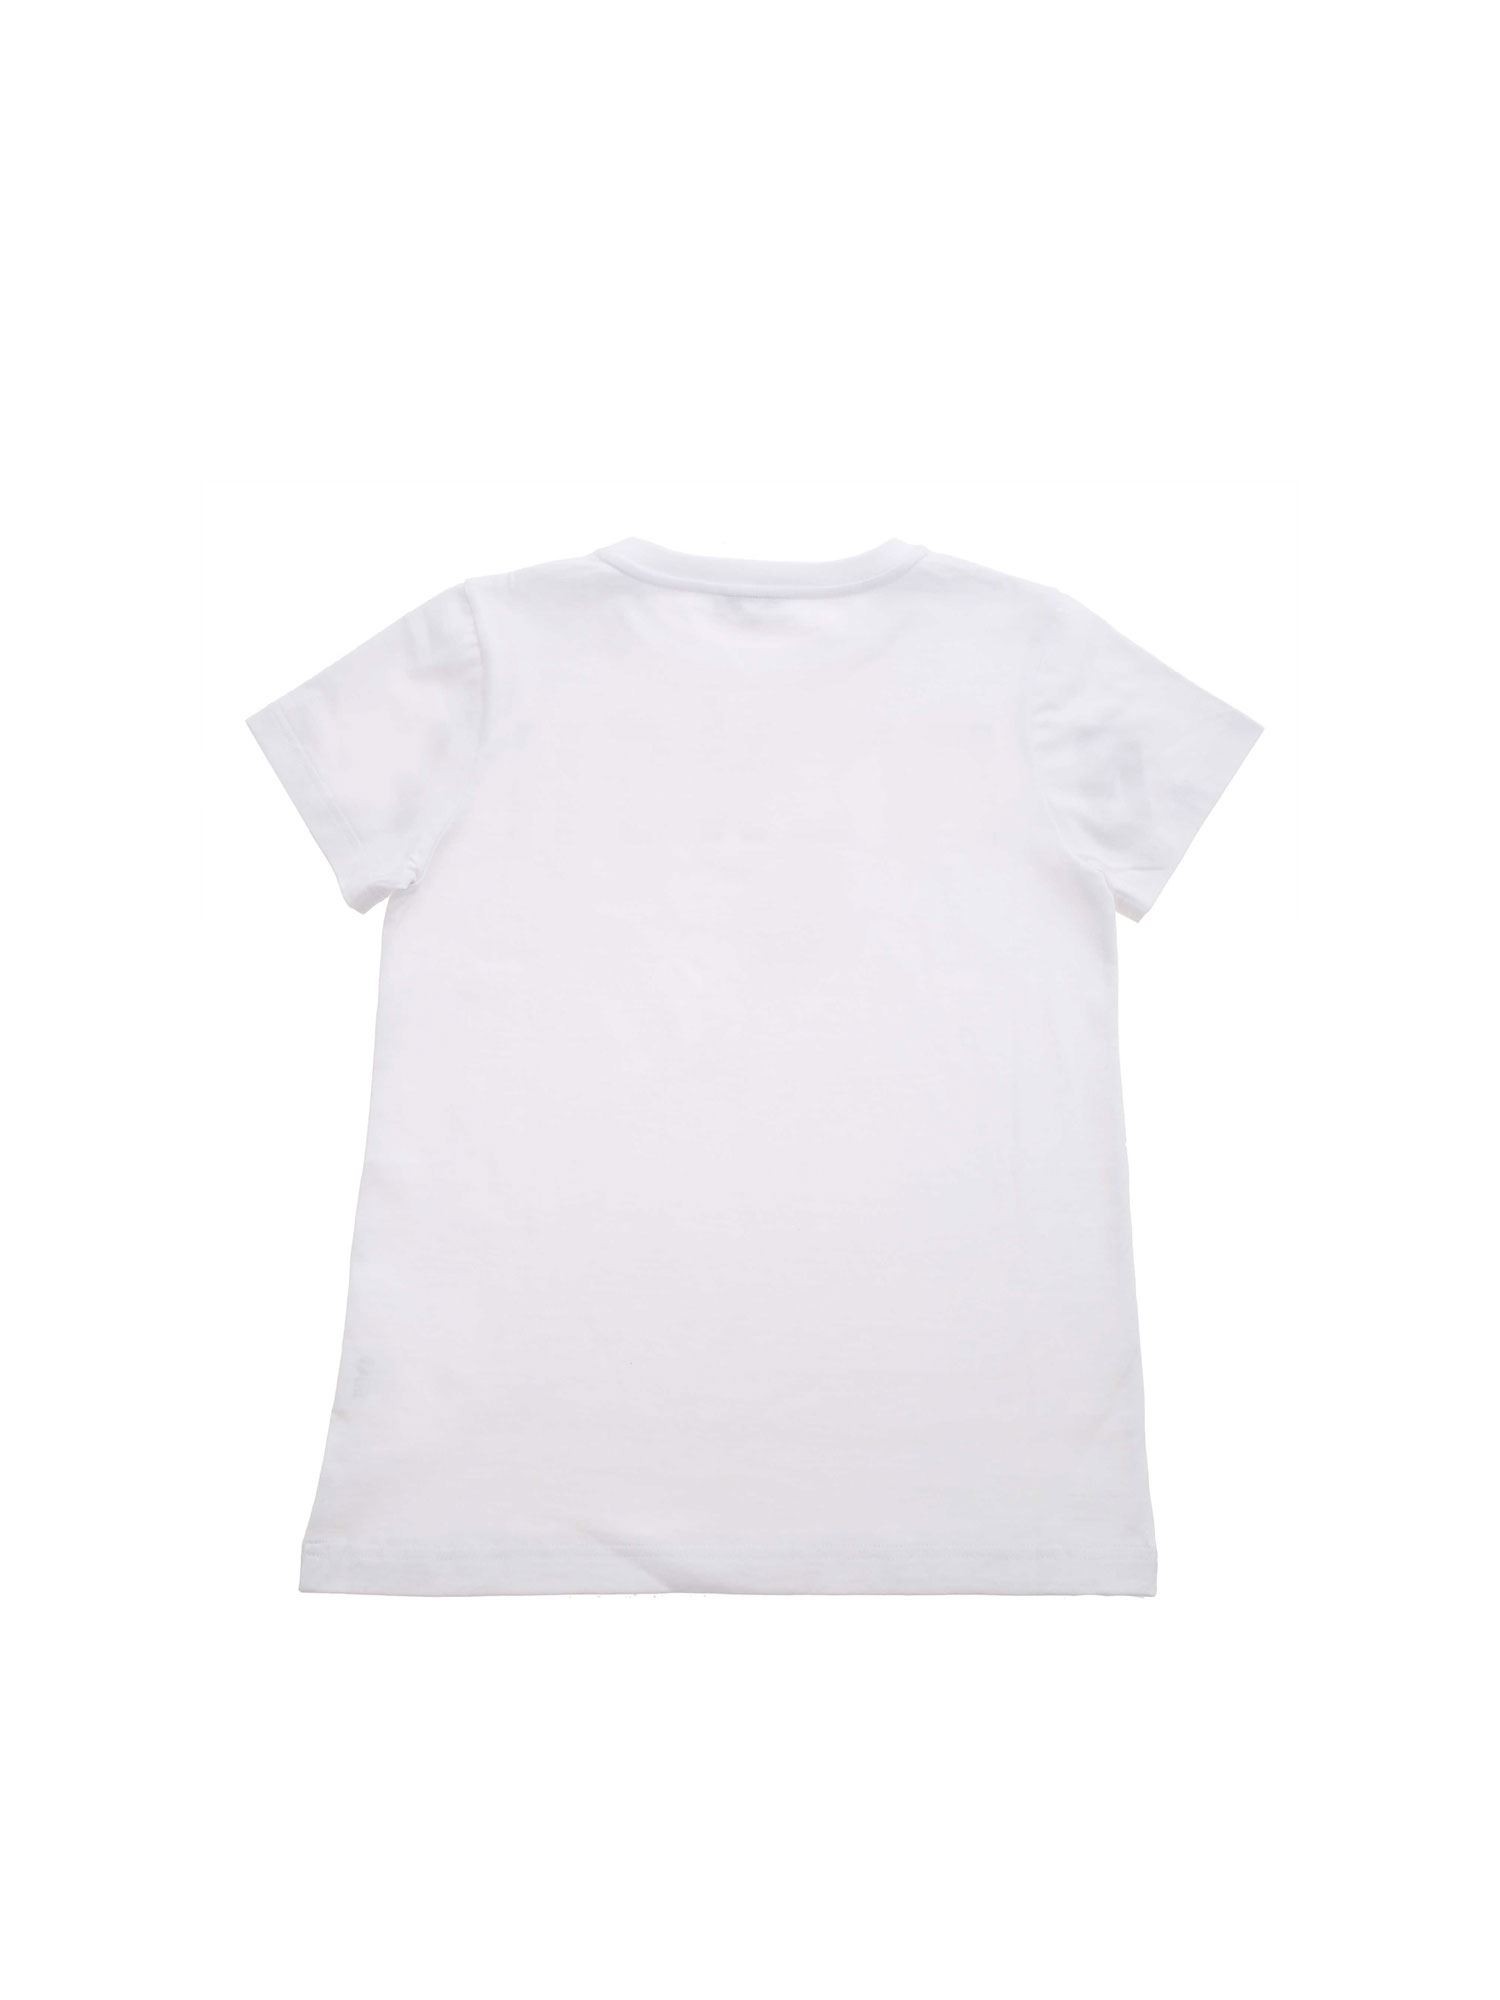 GIVENCHY Cottons CAMOUFLAGE LOGO PRINT T-SHIRT IN WHITE